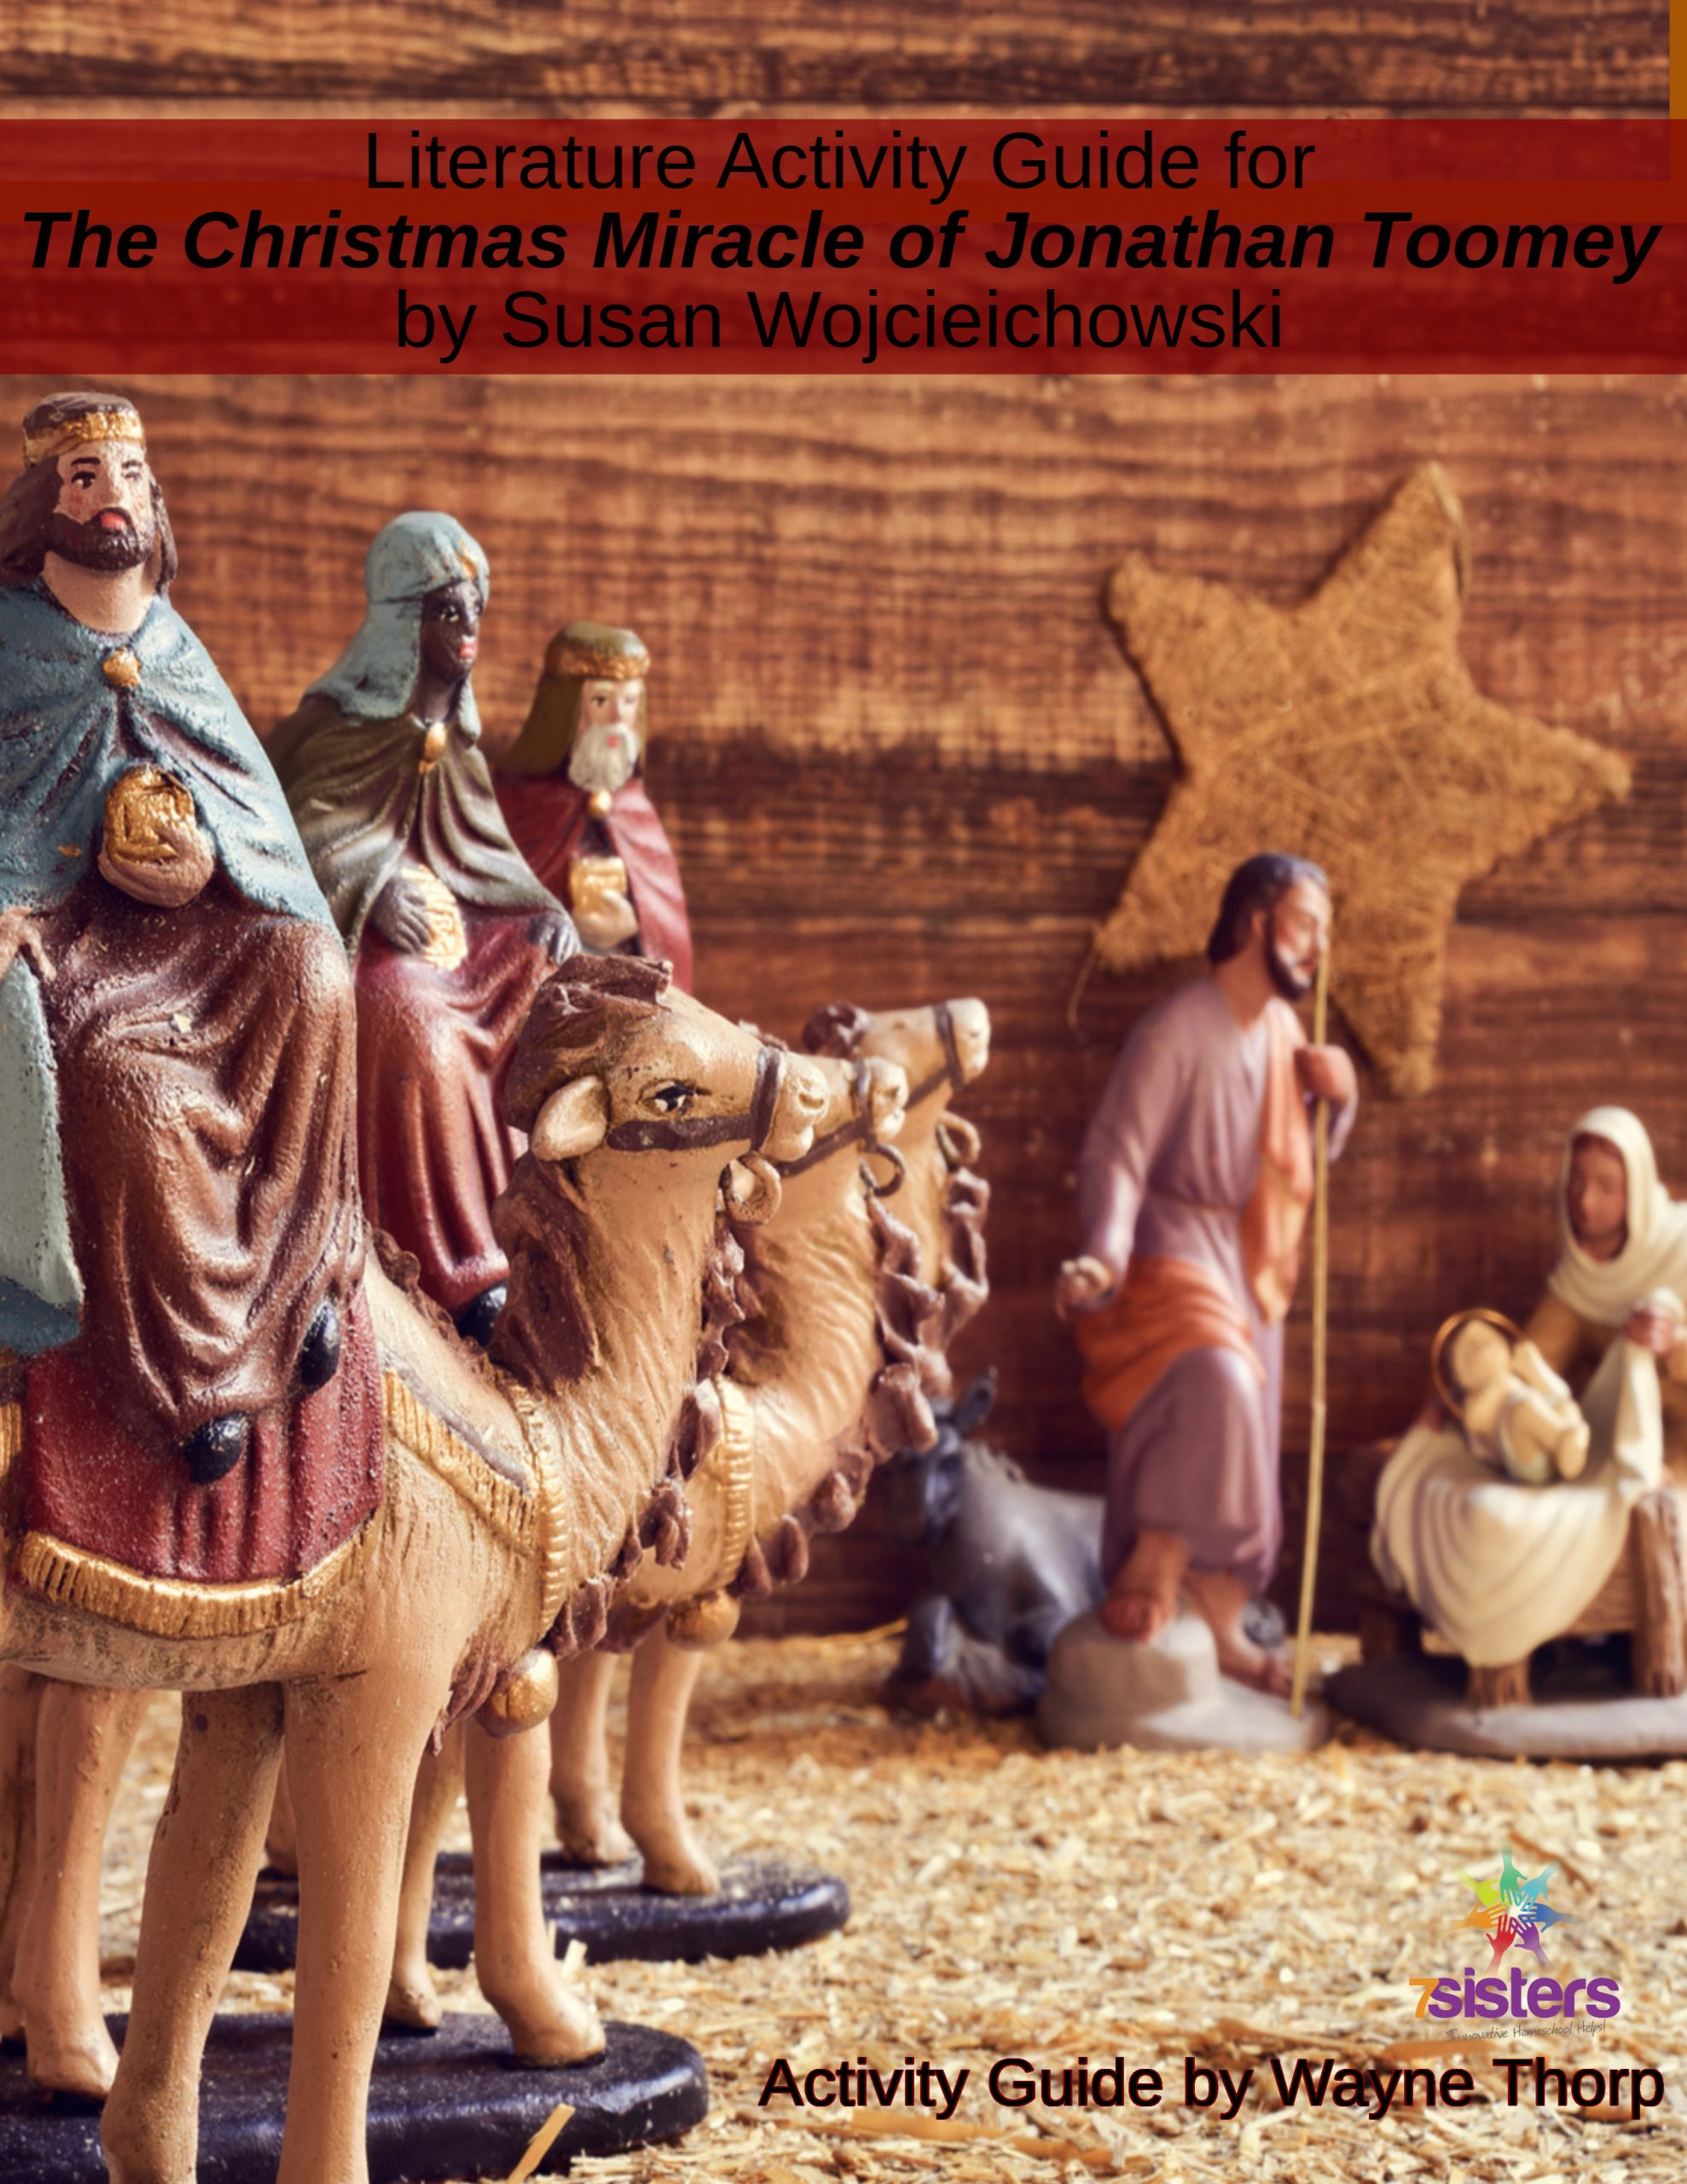 Literature Activity Guide for The Christmas Miracle of Jonathan Toomey